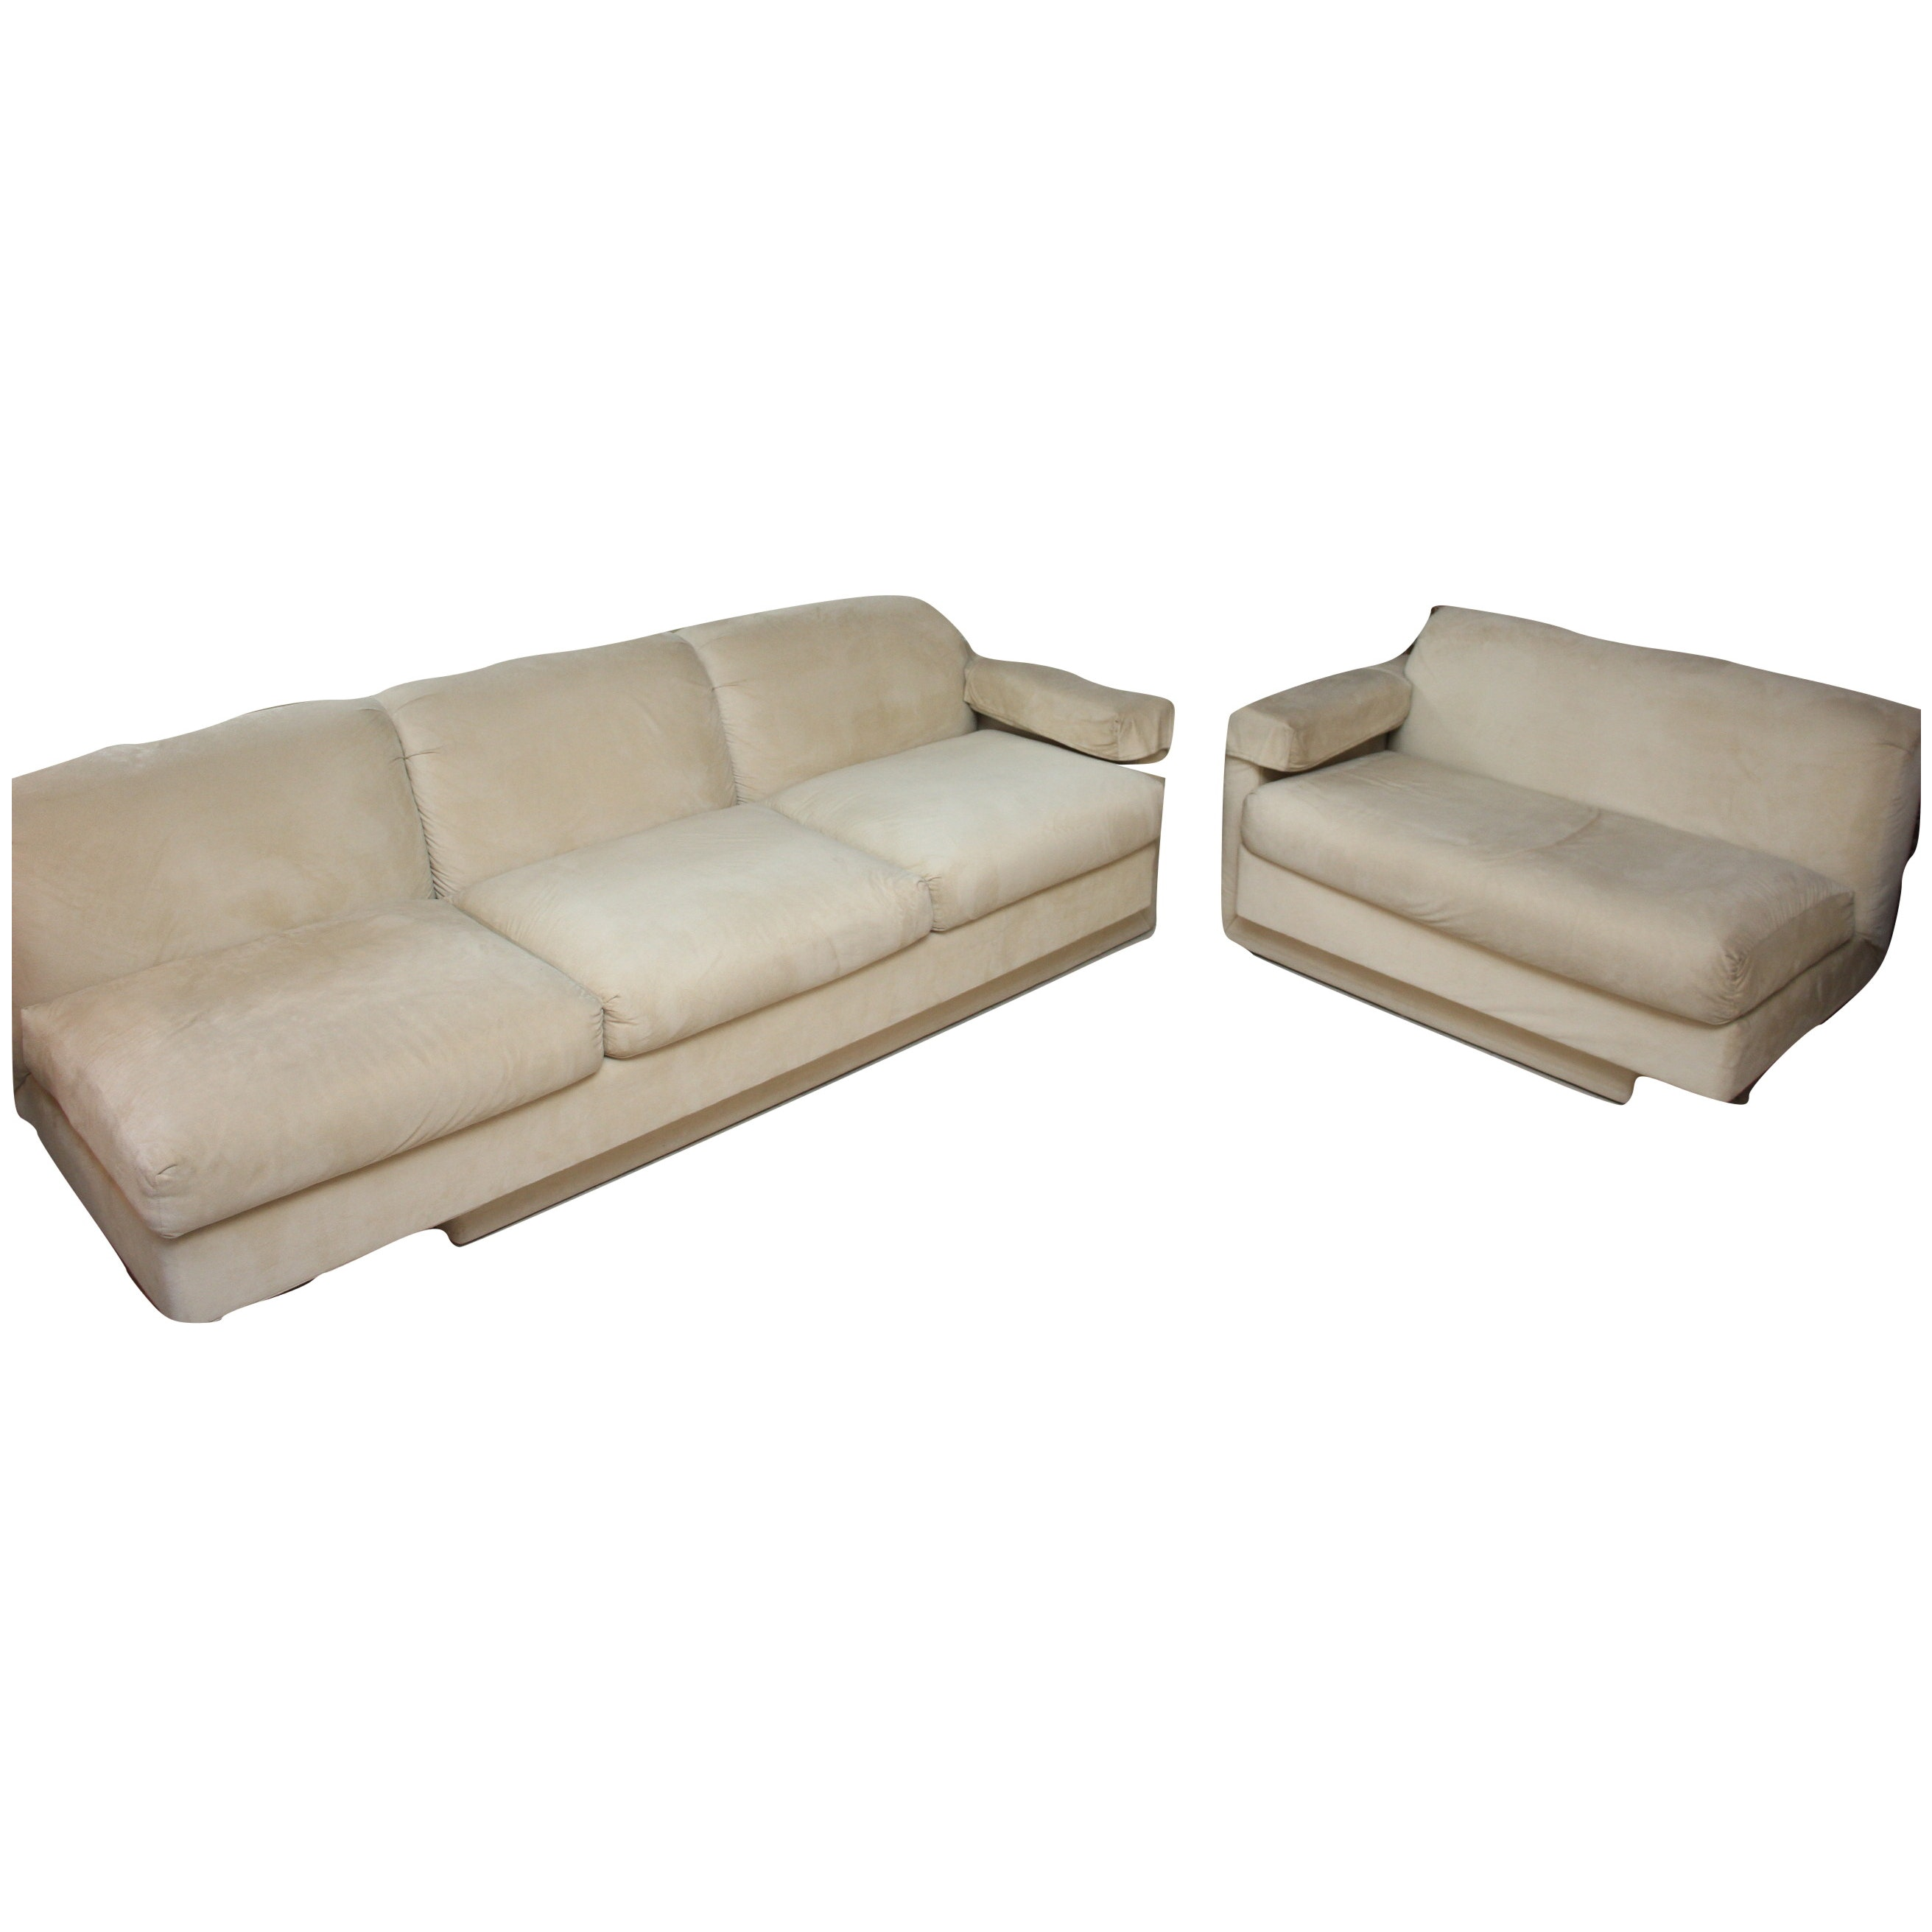 Cantilevered Suede Upholstered Sofa and Loveseat